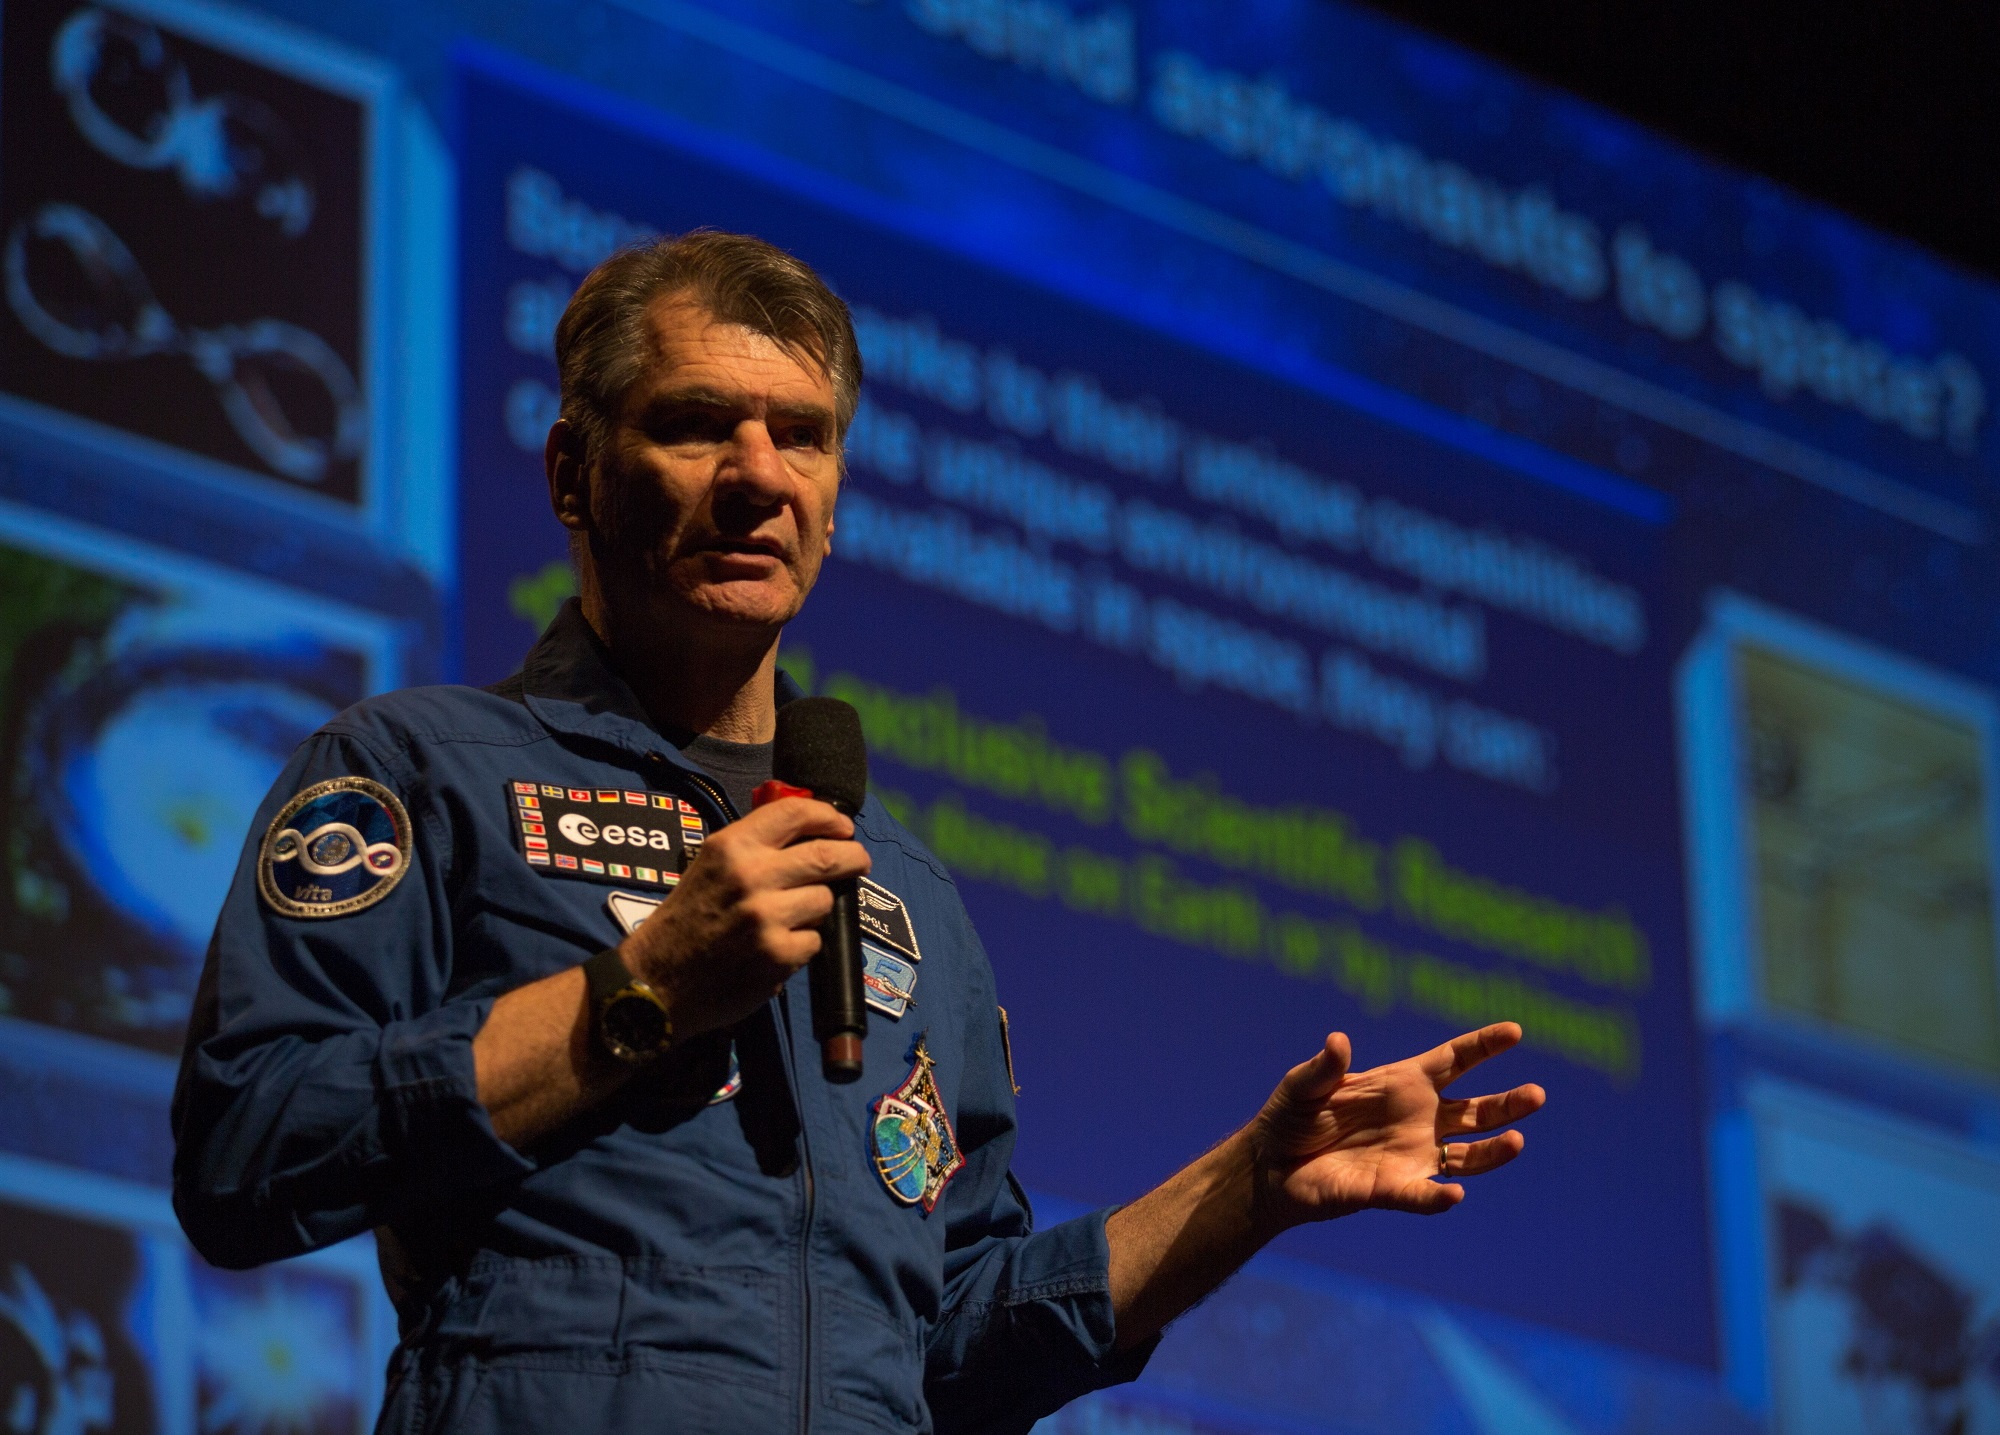 Den italienske astronauten Paolo Nespoli på Spaceport Norway 2018. Foto: Spaceport Norway / Andrea Rocha